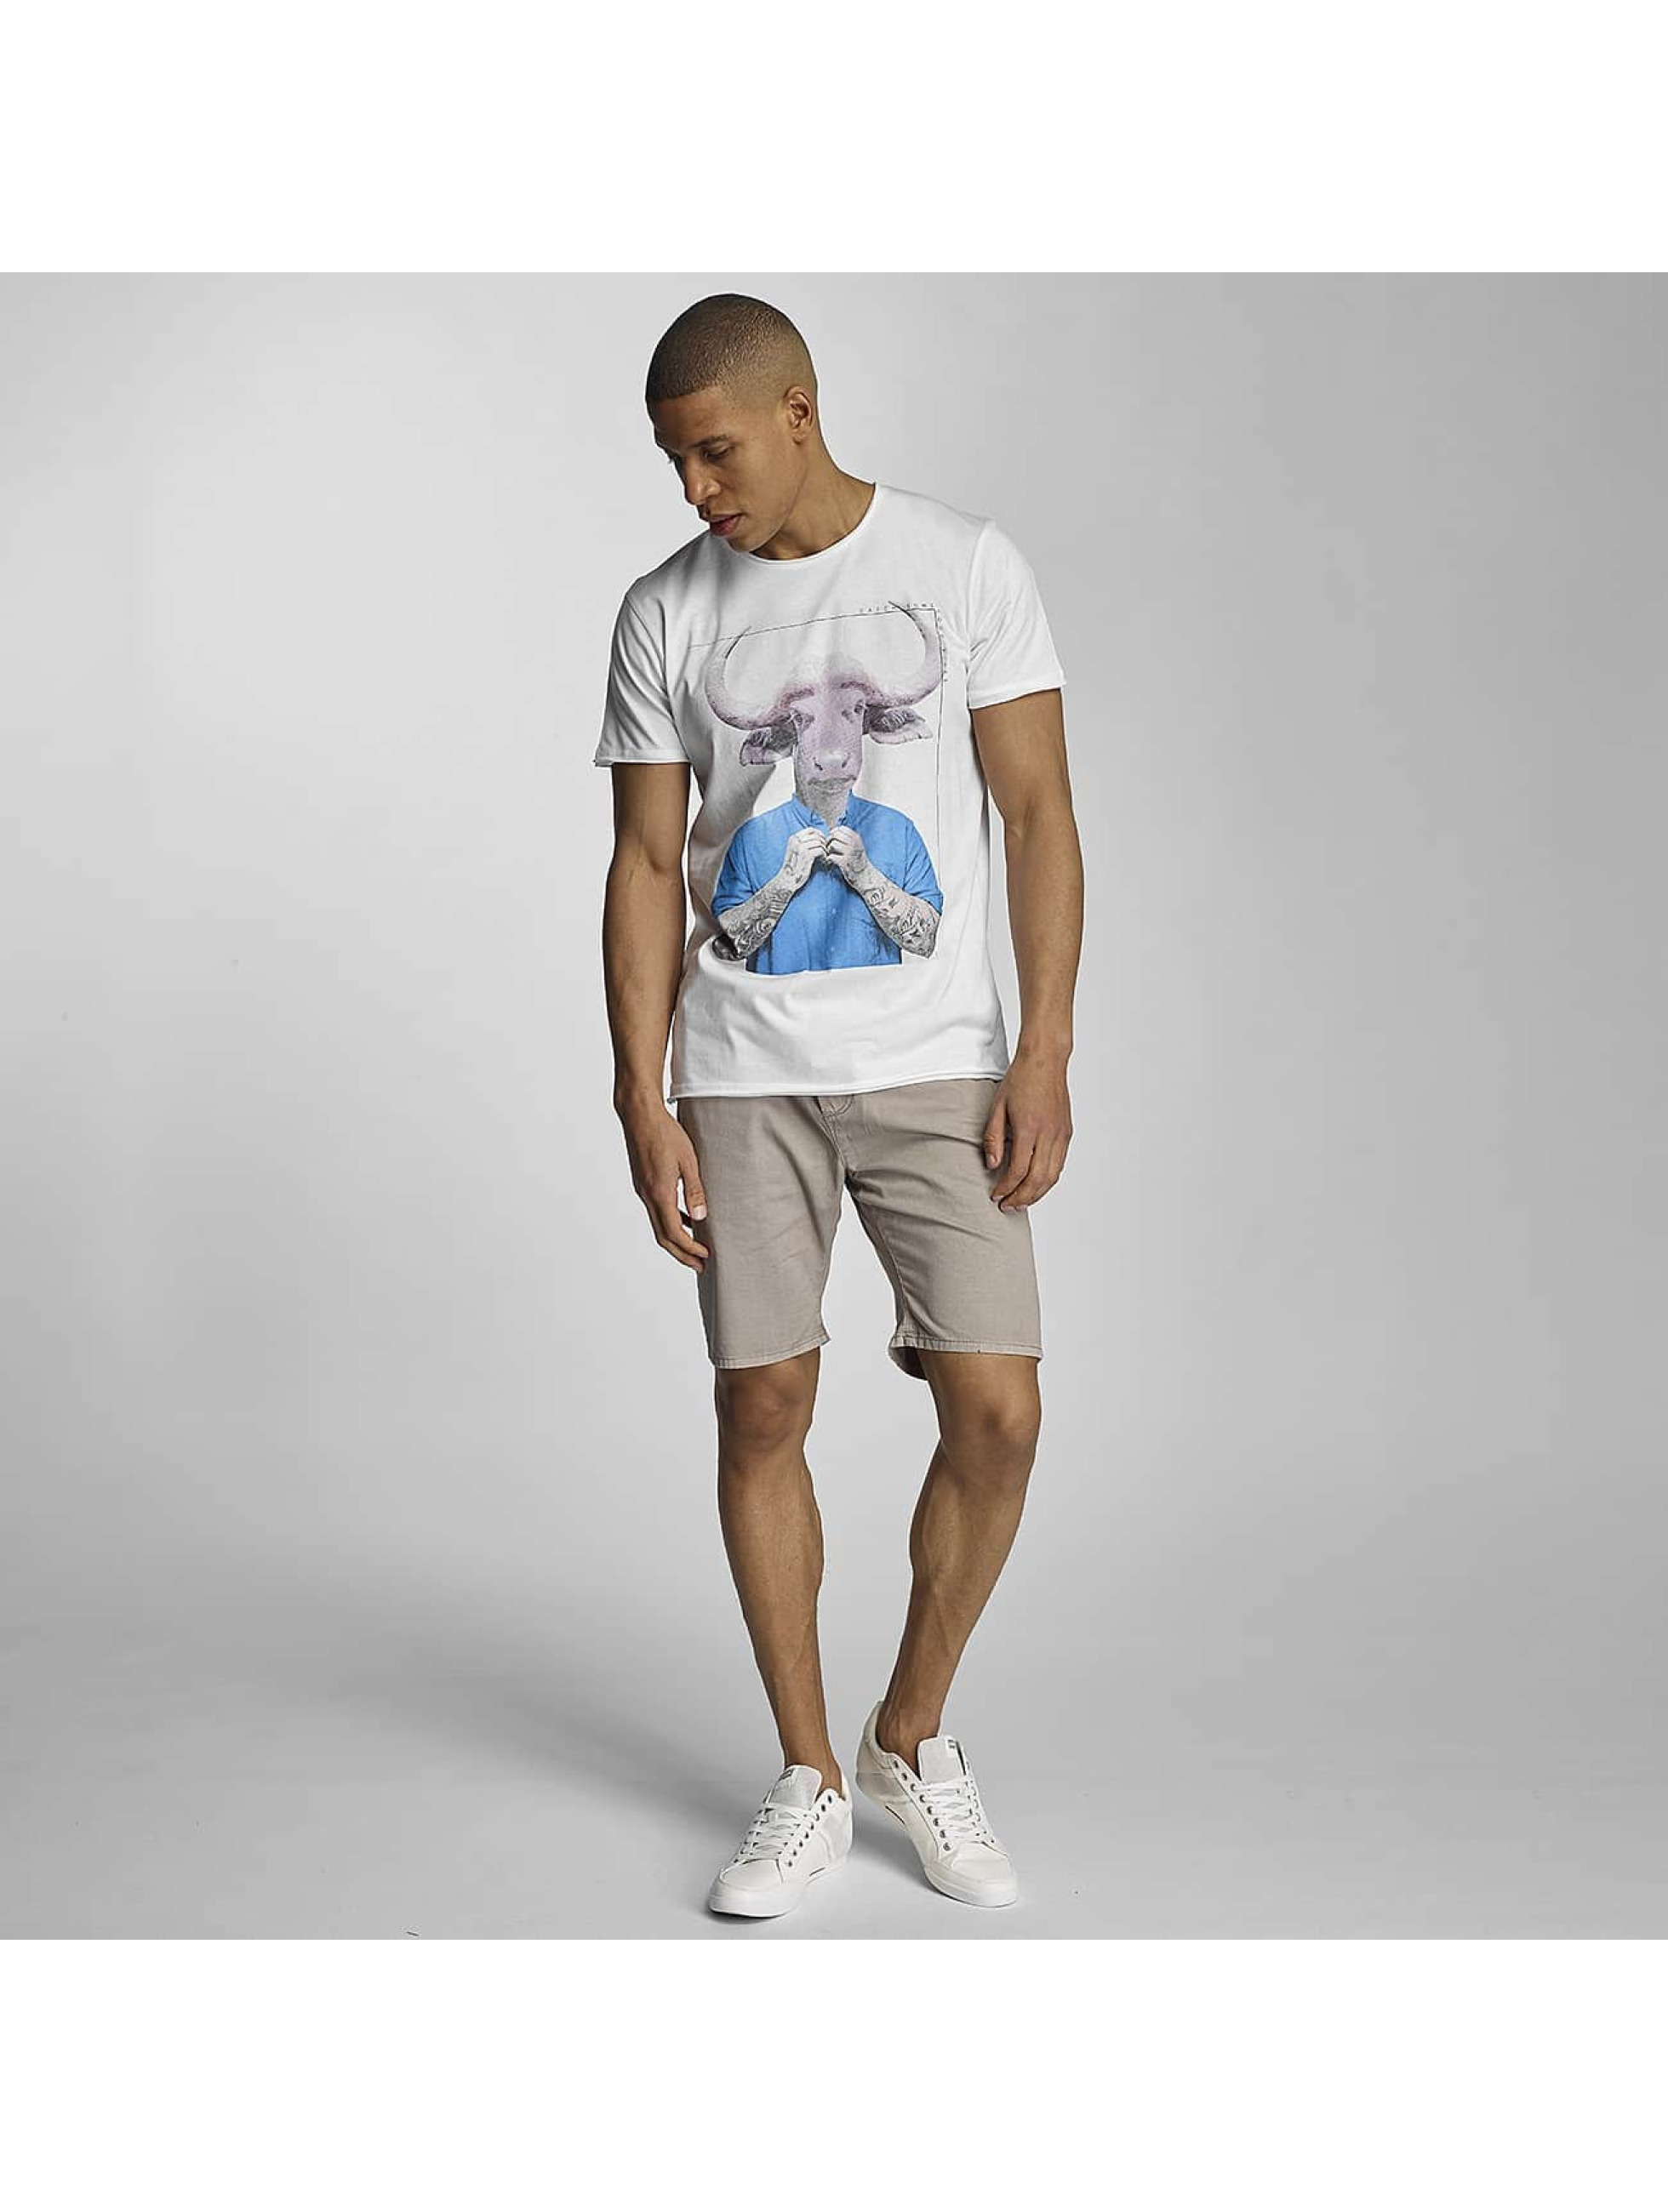 Sky Rebel Camiseta Till blanco